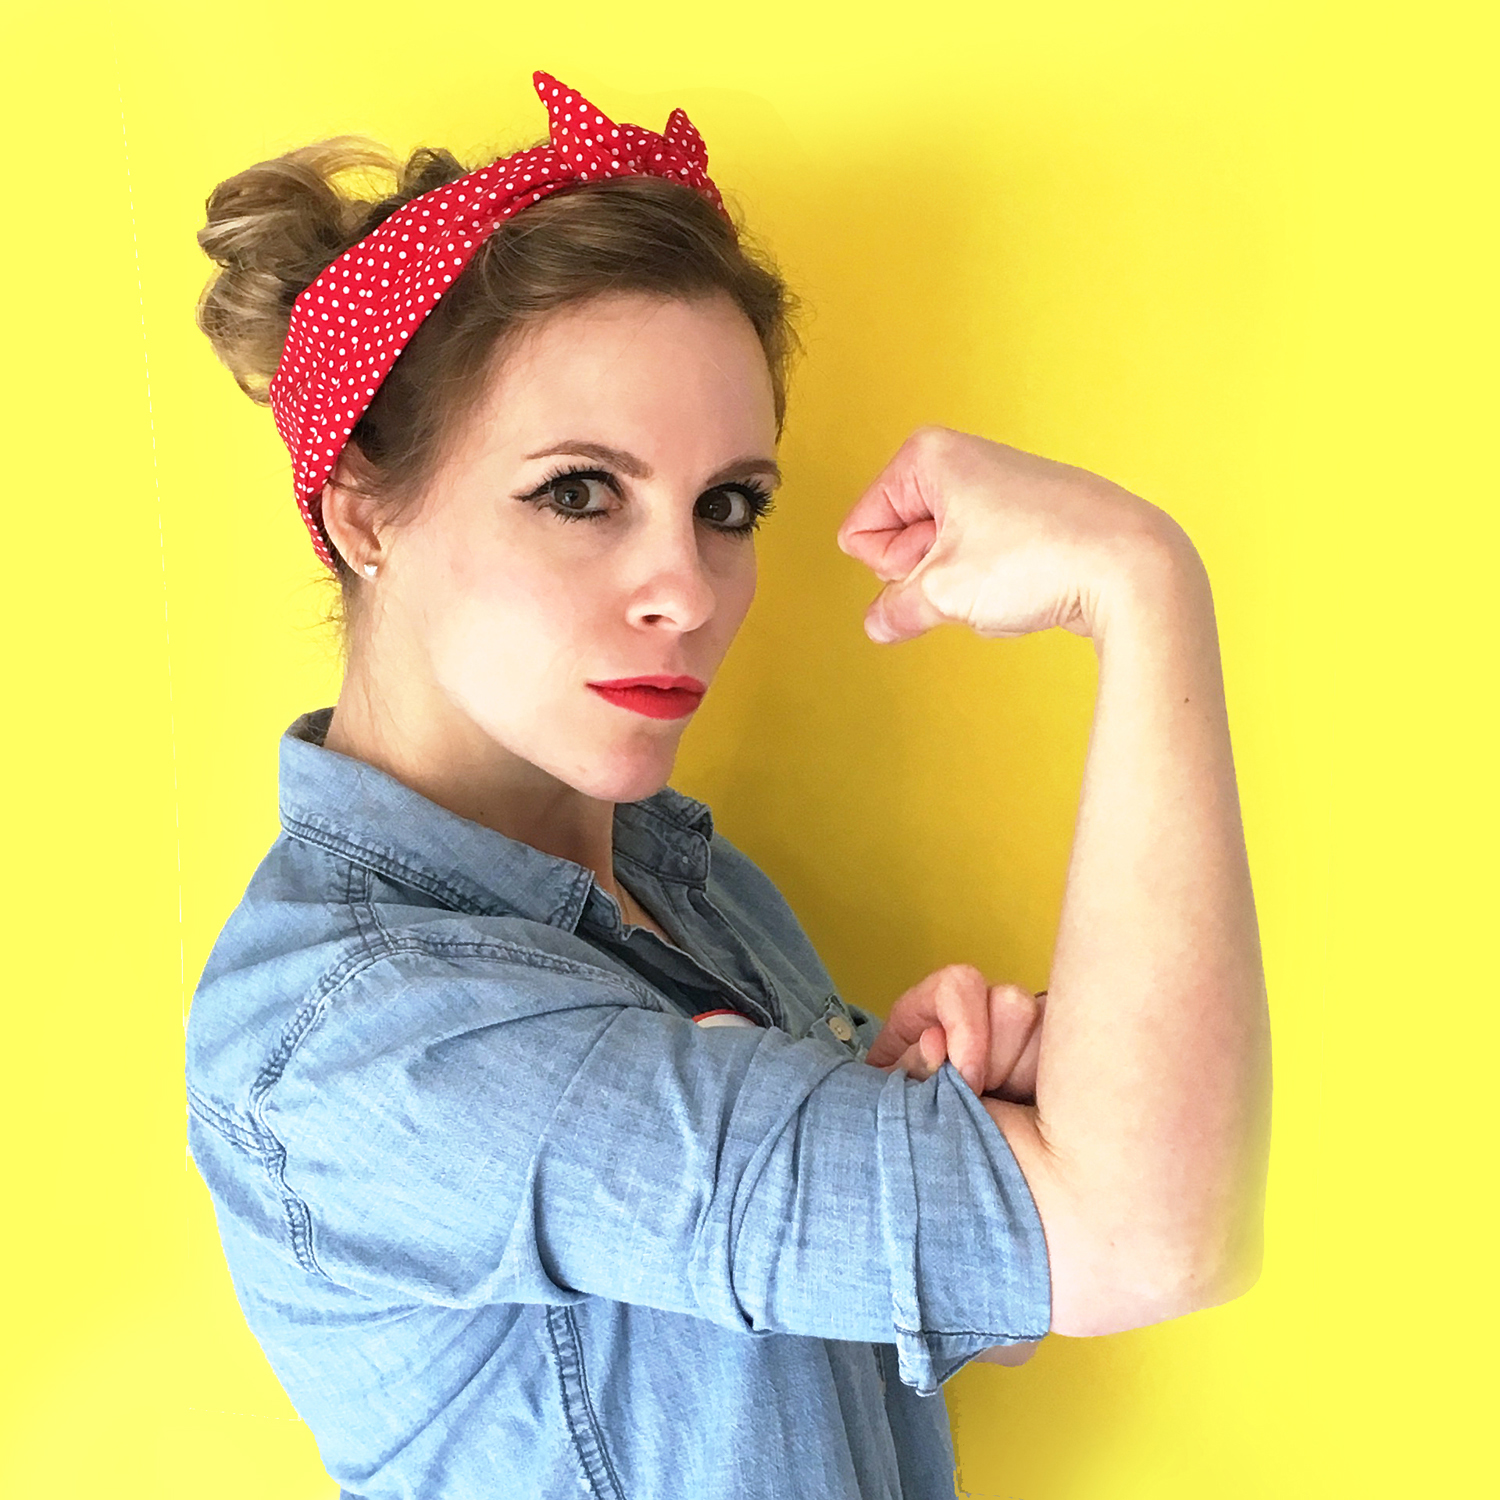 last minute halloween costume - rosie the riveter iconic pose, rosie the riveter poster picture, diy rosie the riveter costume